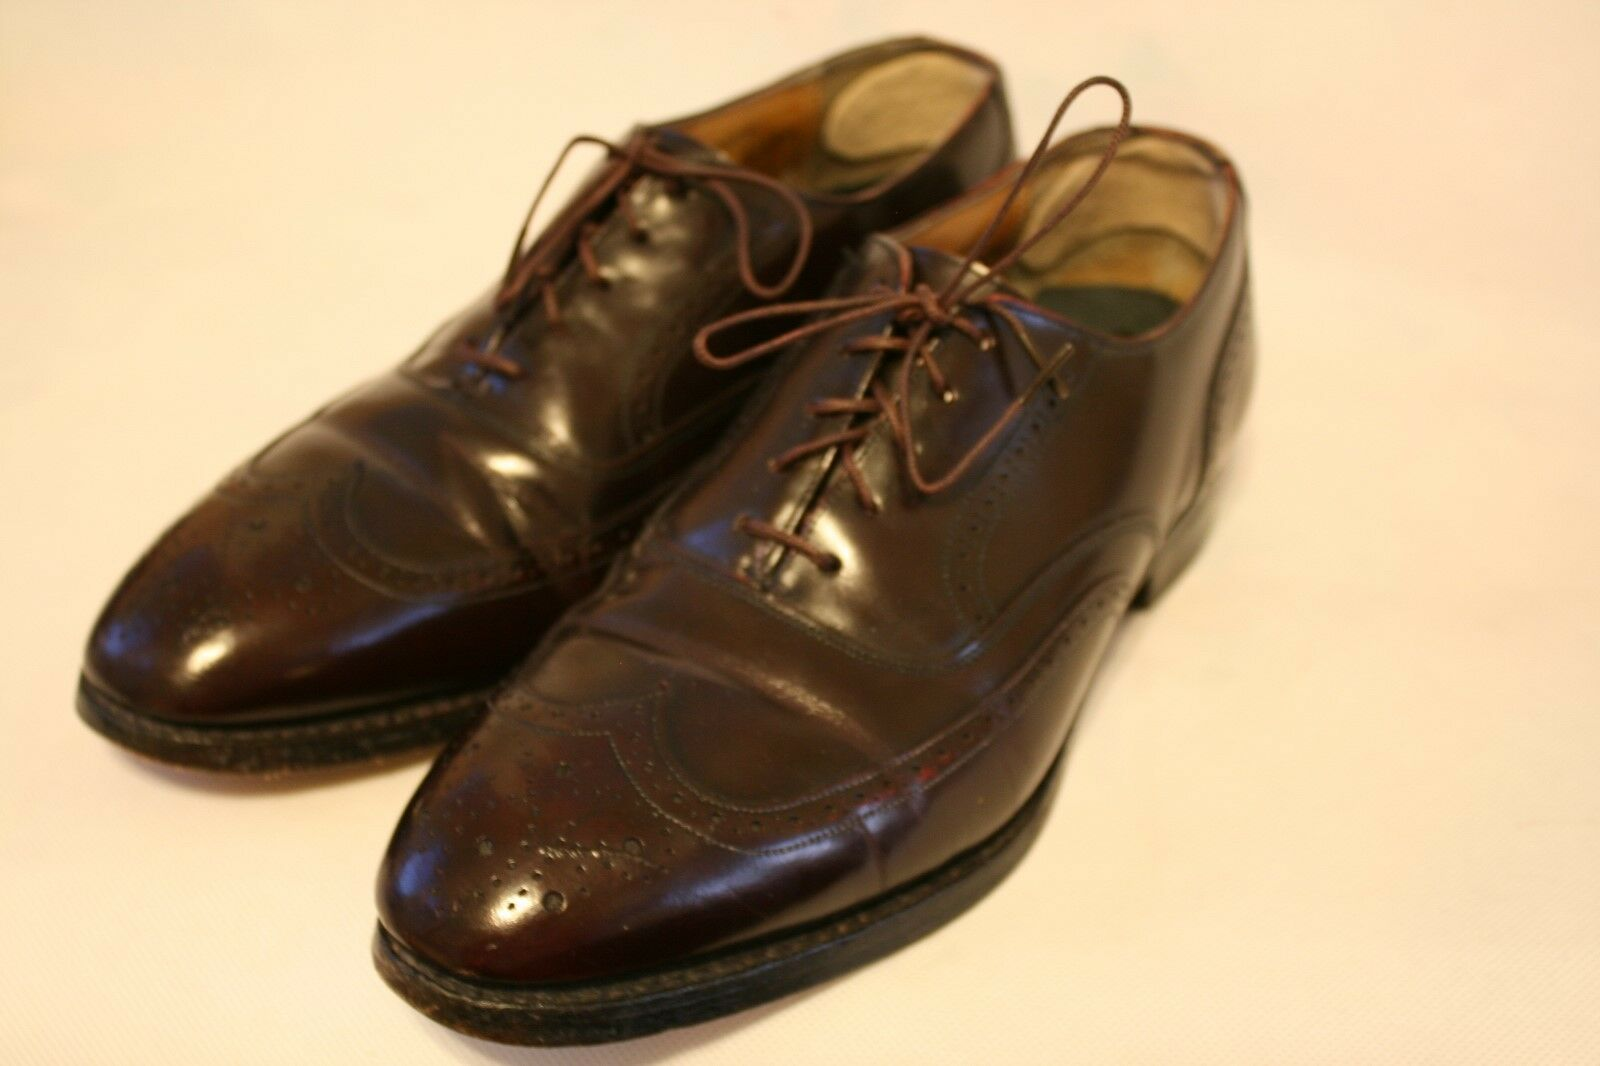 Men's Stafford Burgundy Leather Lace-Up Wing Tips Dress Shoes Size 8 D/B 89740